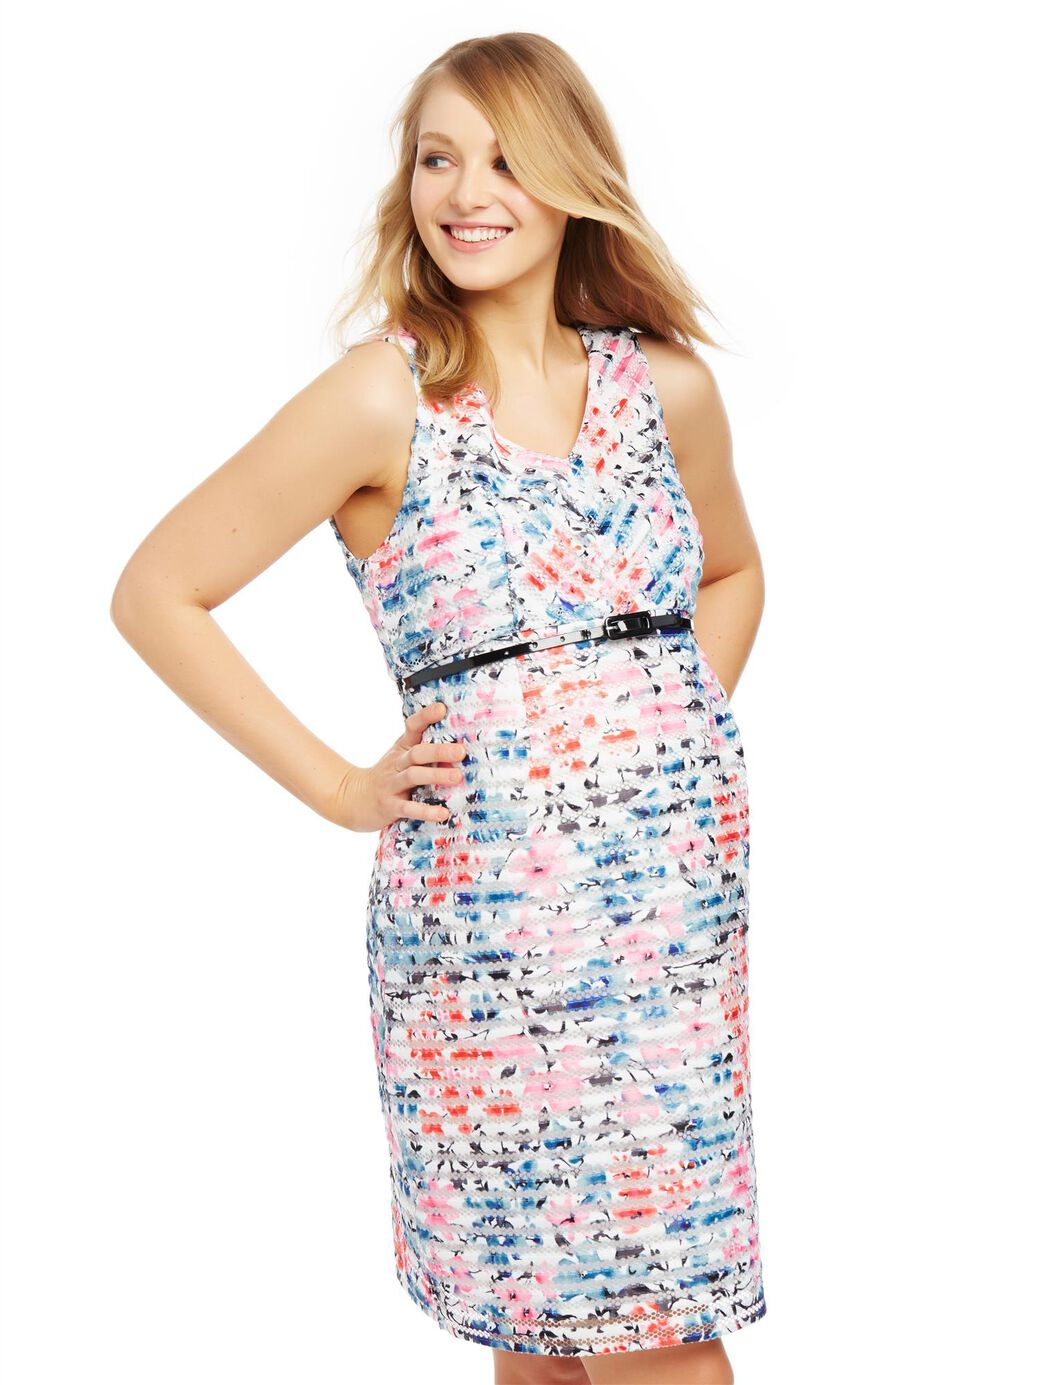 Jacquard Lace Maternity Dress- Floral at Motherhood Maternity in Victor, NY | Tuggl